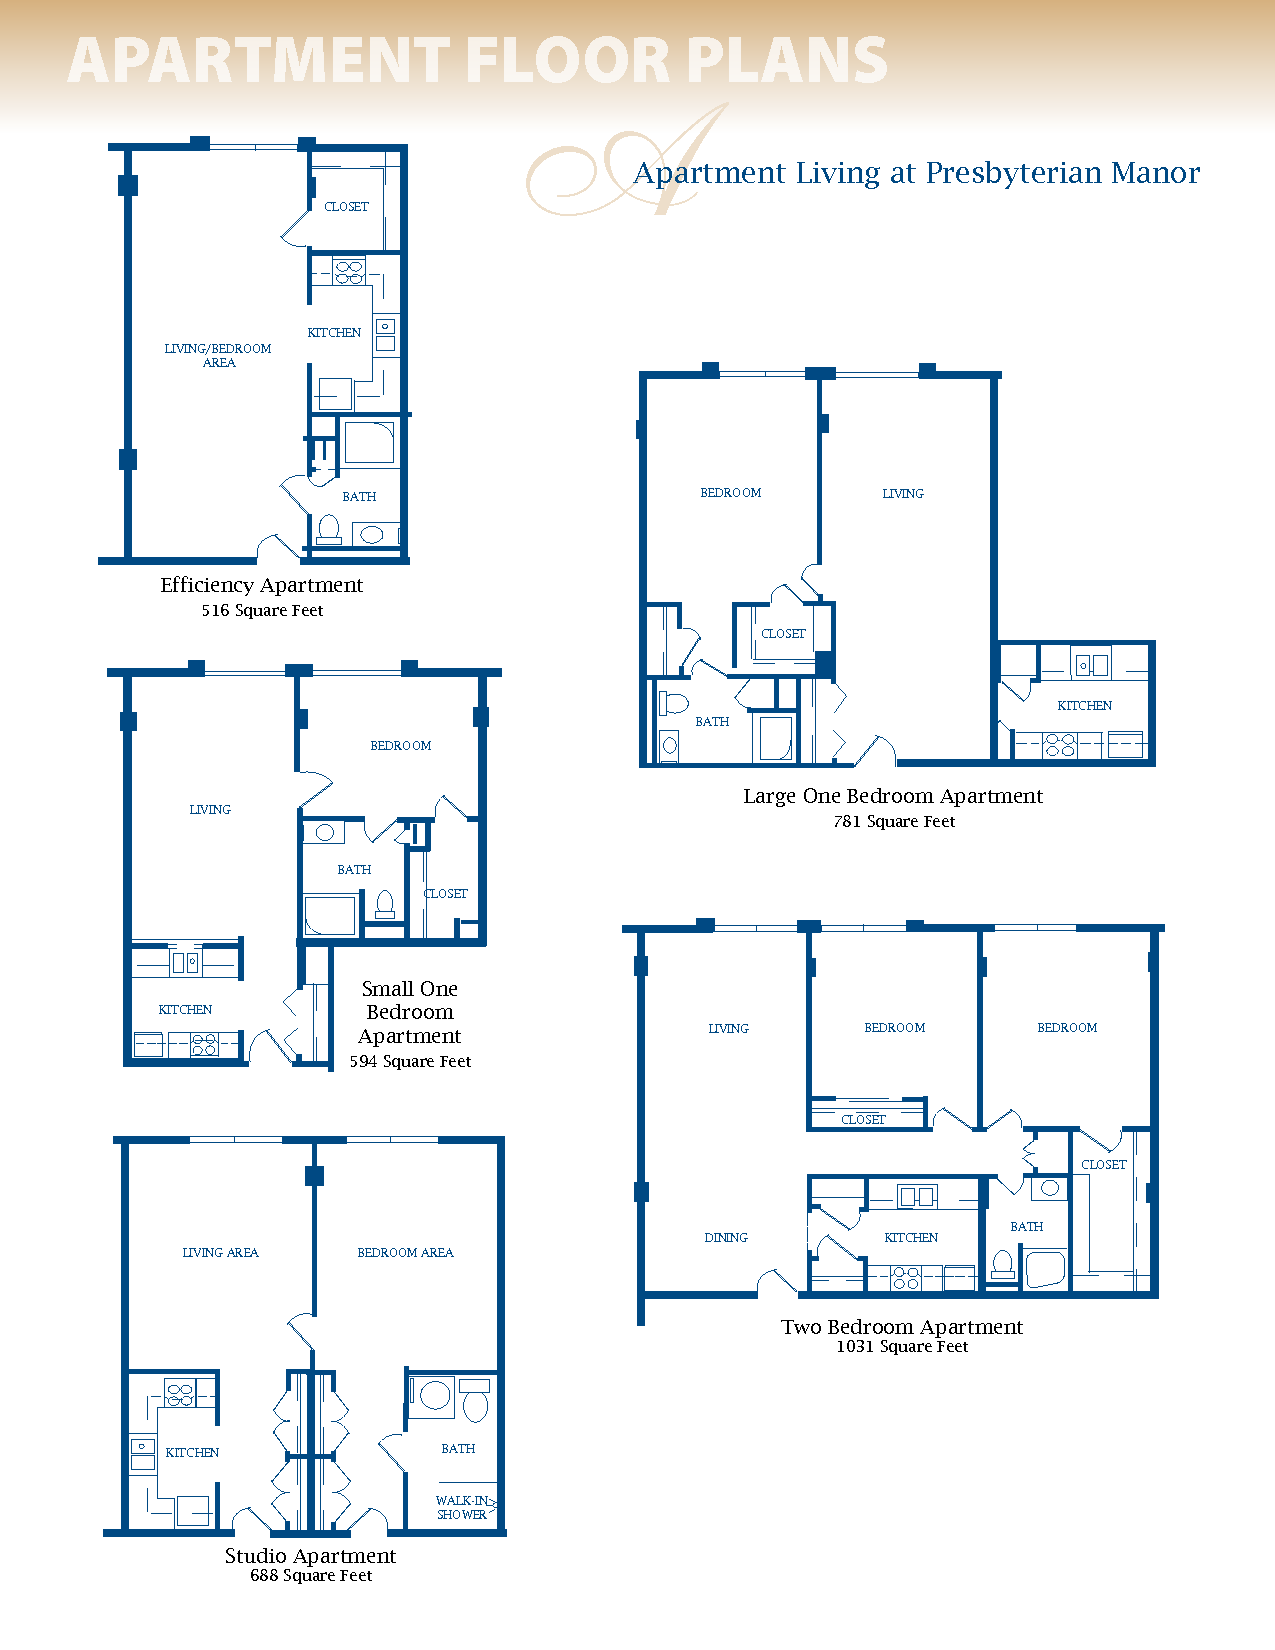 Small Efficiency Apartment Plans | Floor Plans trong 2019